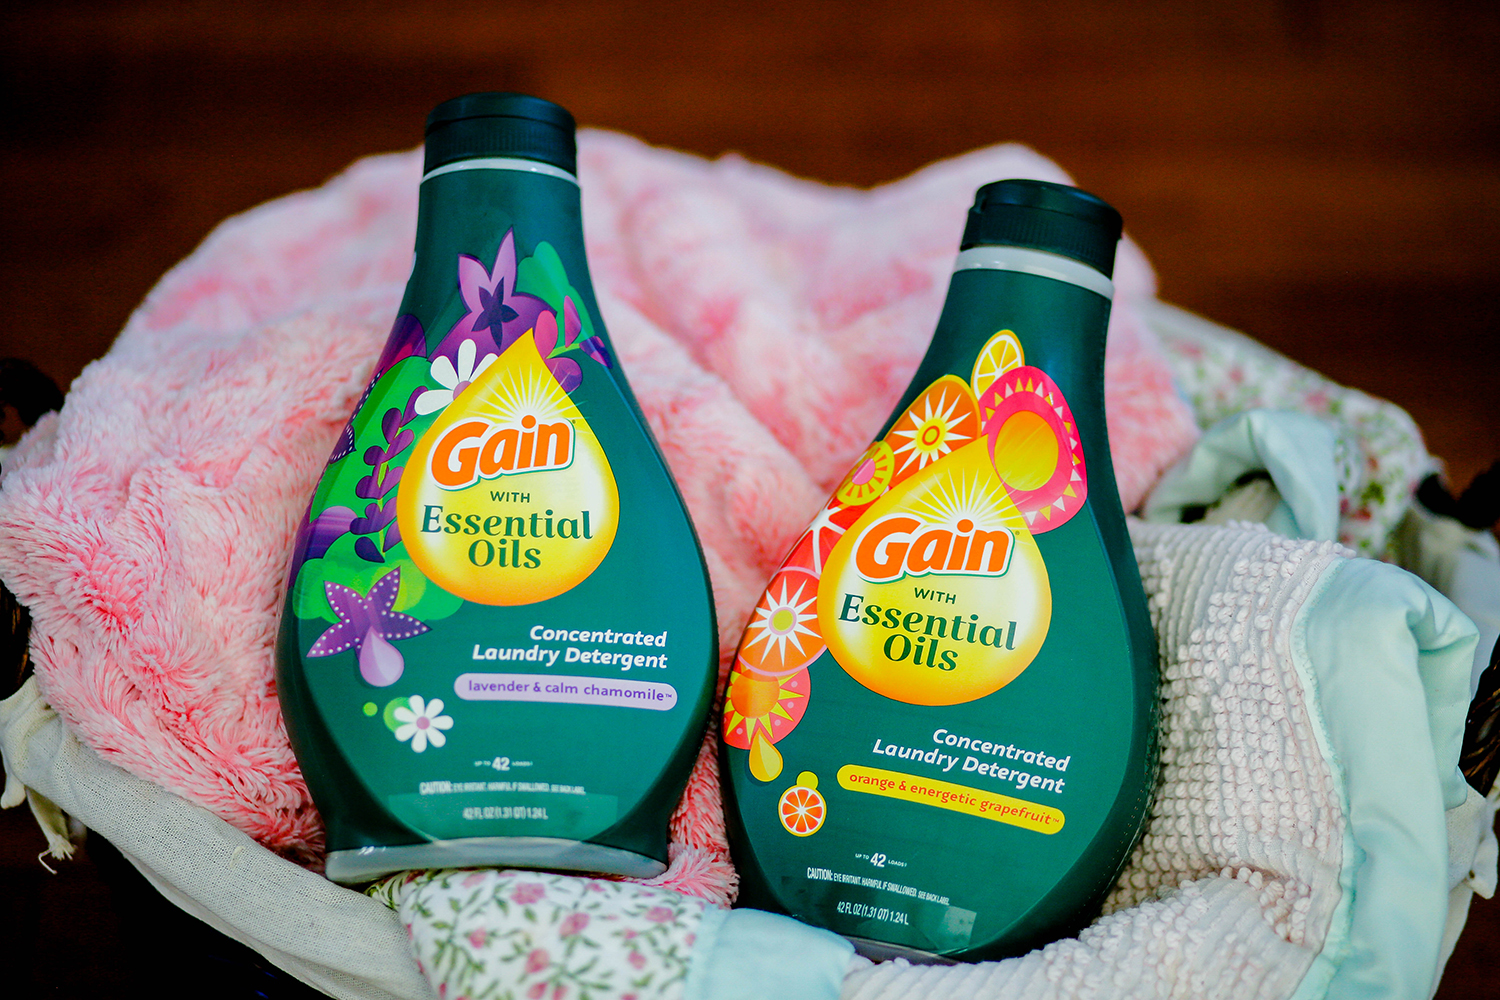 Gain Laundry with Essential Oils